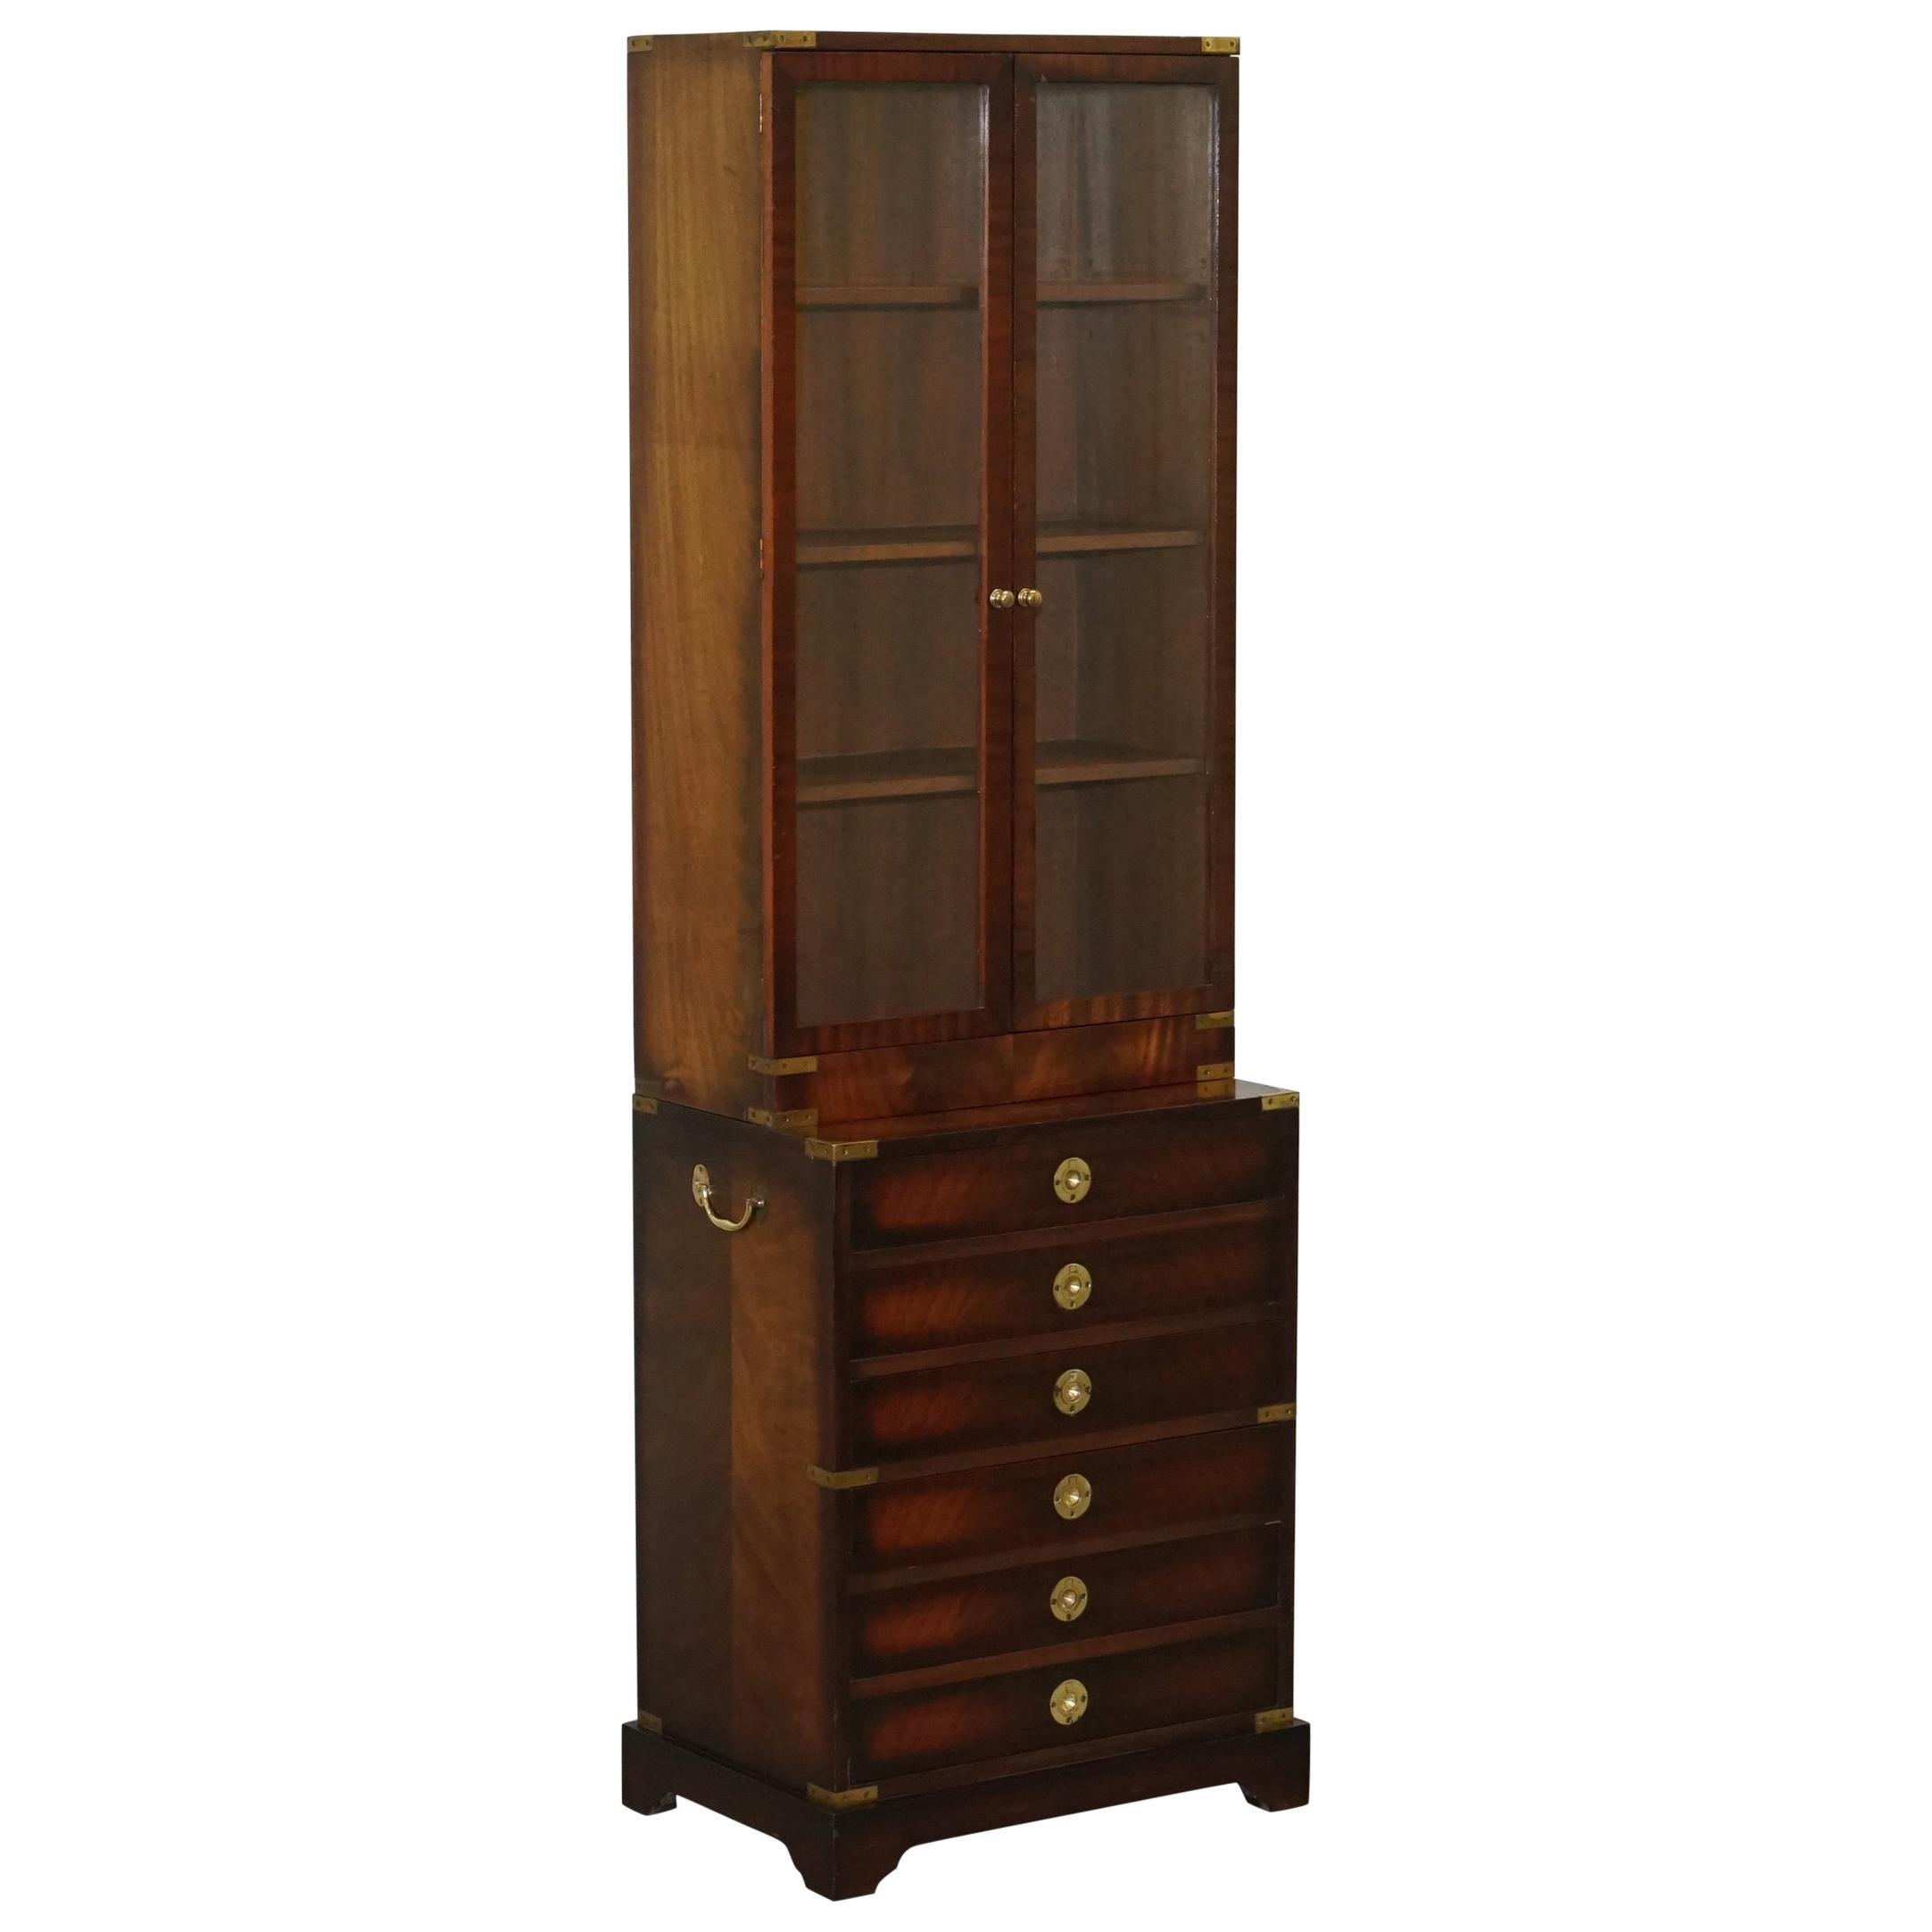 Harrods Kennedy Military Campaign Hardwood Brass Bookcase Chest of Drawers